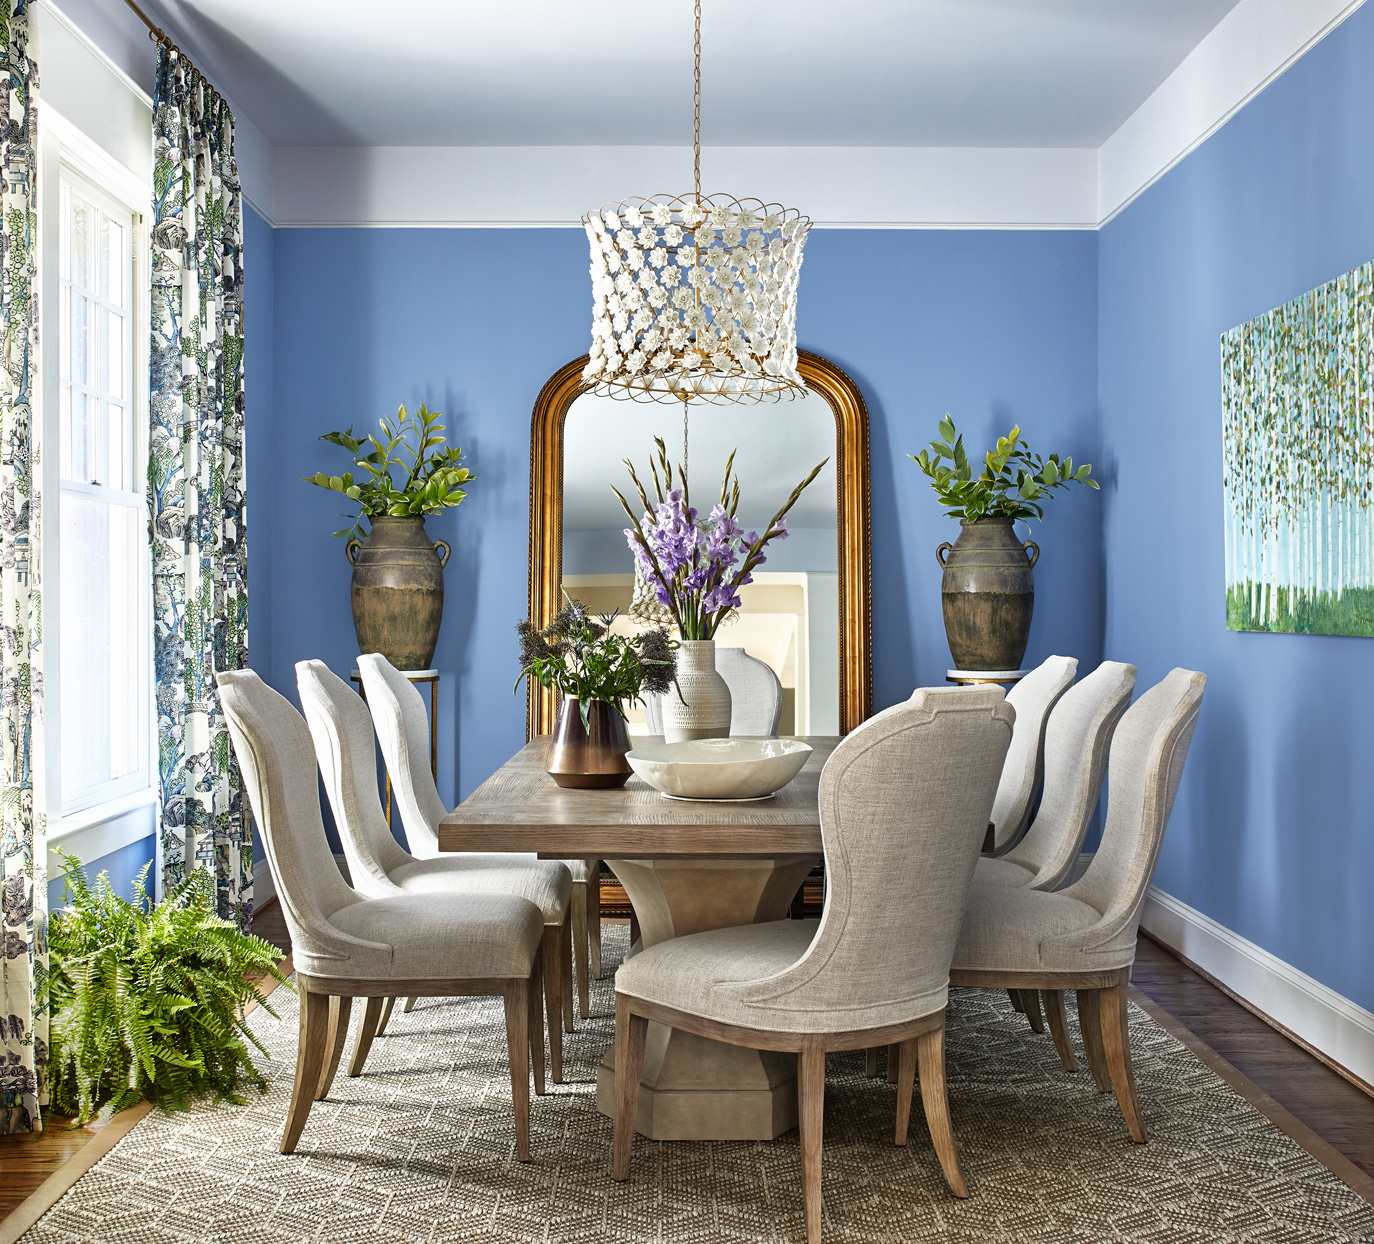 The Best Dining Room Wall Decorations Martha Stewart